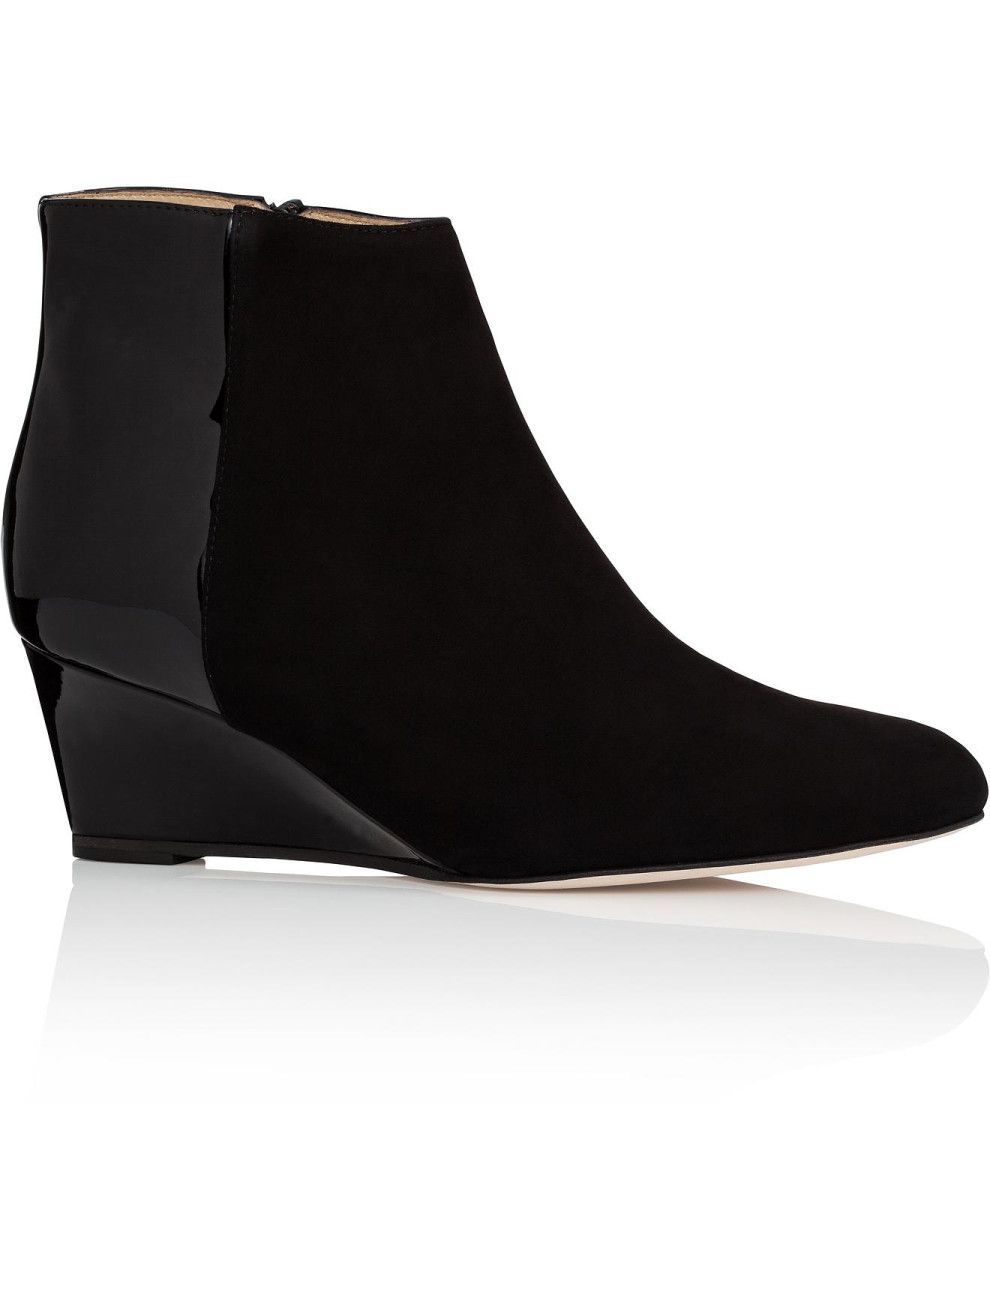 Milana Leather Tilly Wedge Ankle Boot